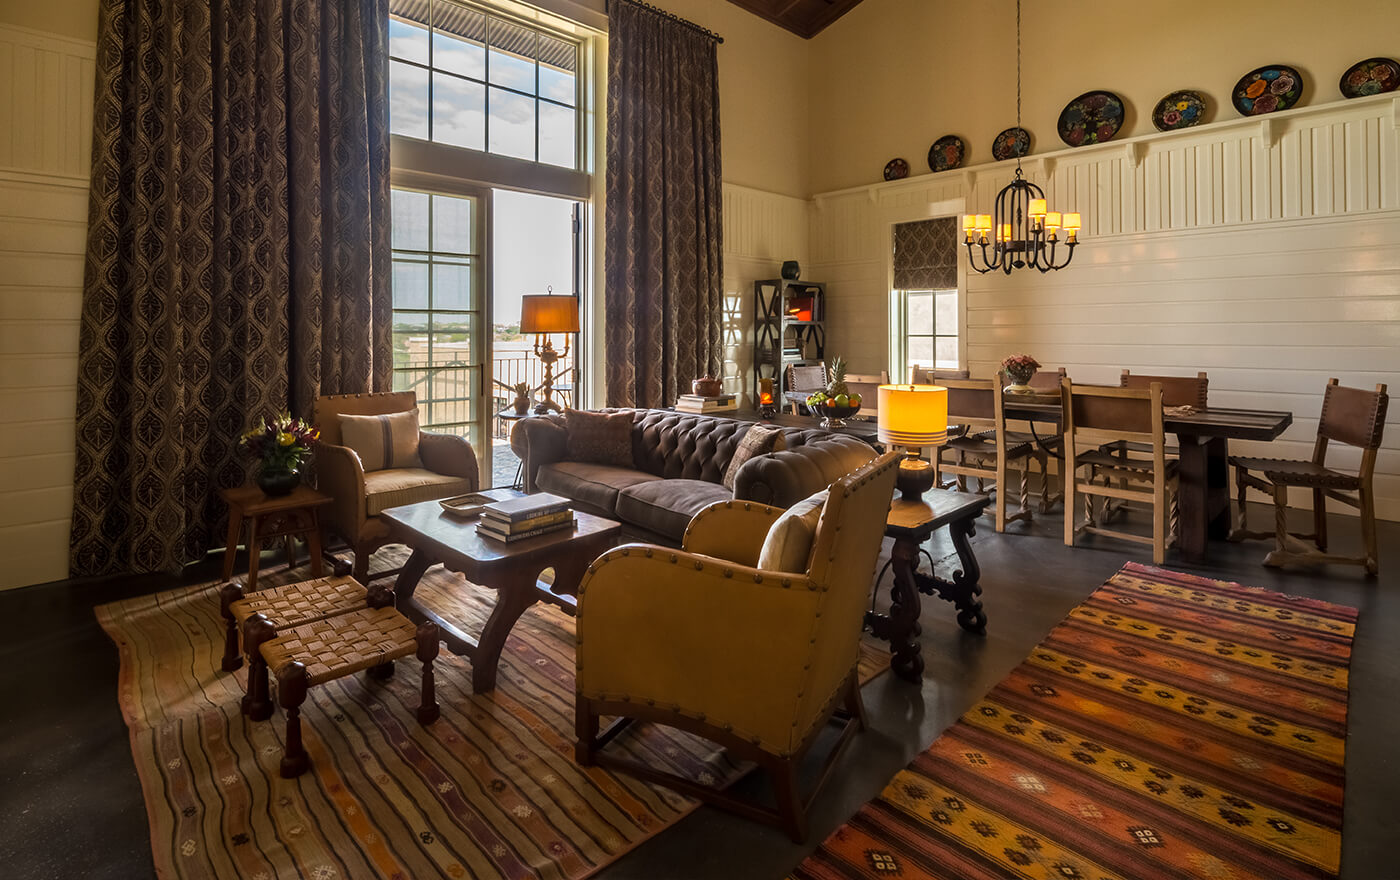 A picture of Hotel Emma's Otto suite option. Pictured is the spacious living room with tall windows, a seating arrangement and an 8 person table.